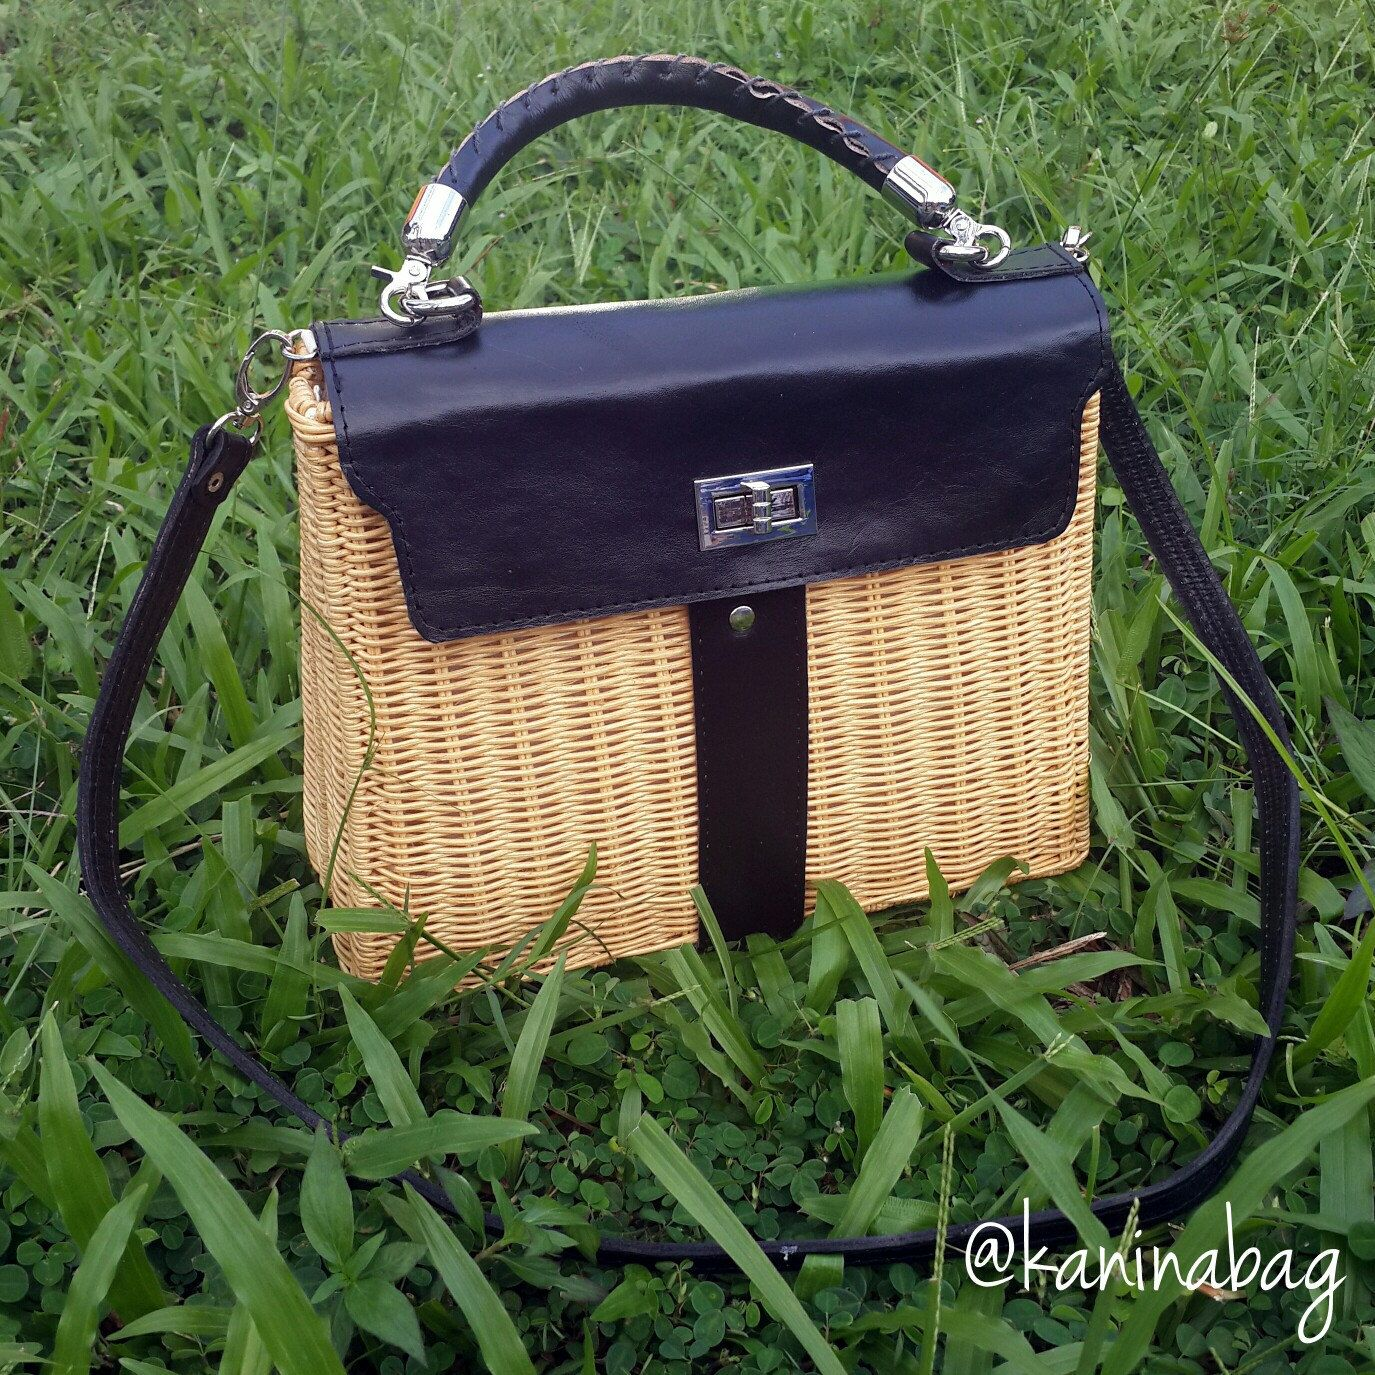 90a9809b656b 18c6c 071cc  buy handmade is always win the nature. hermes kelly bagcow  0280f 42540